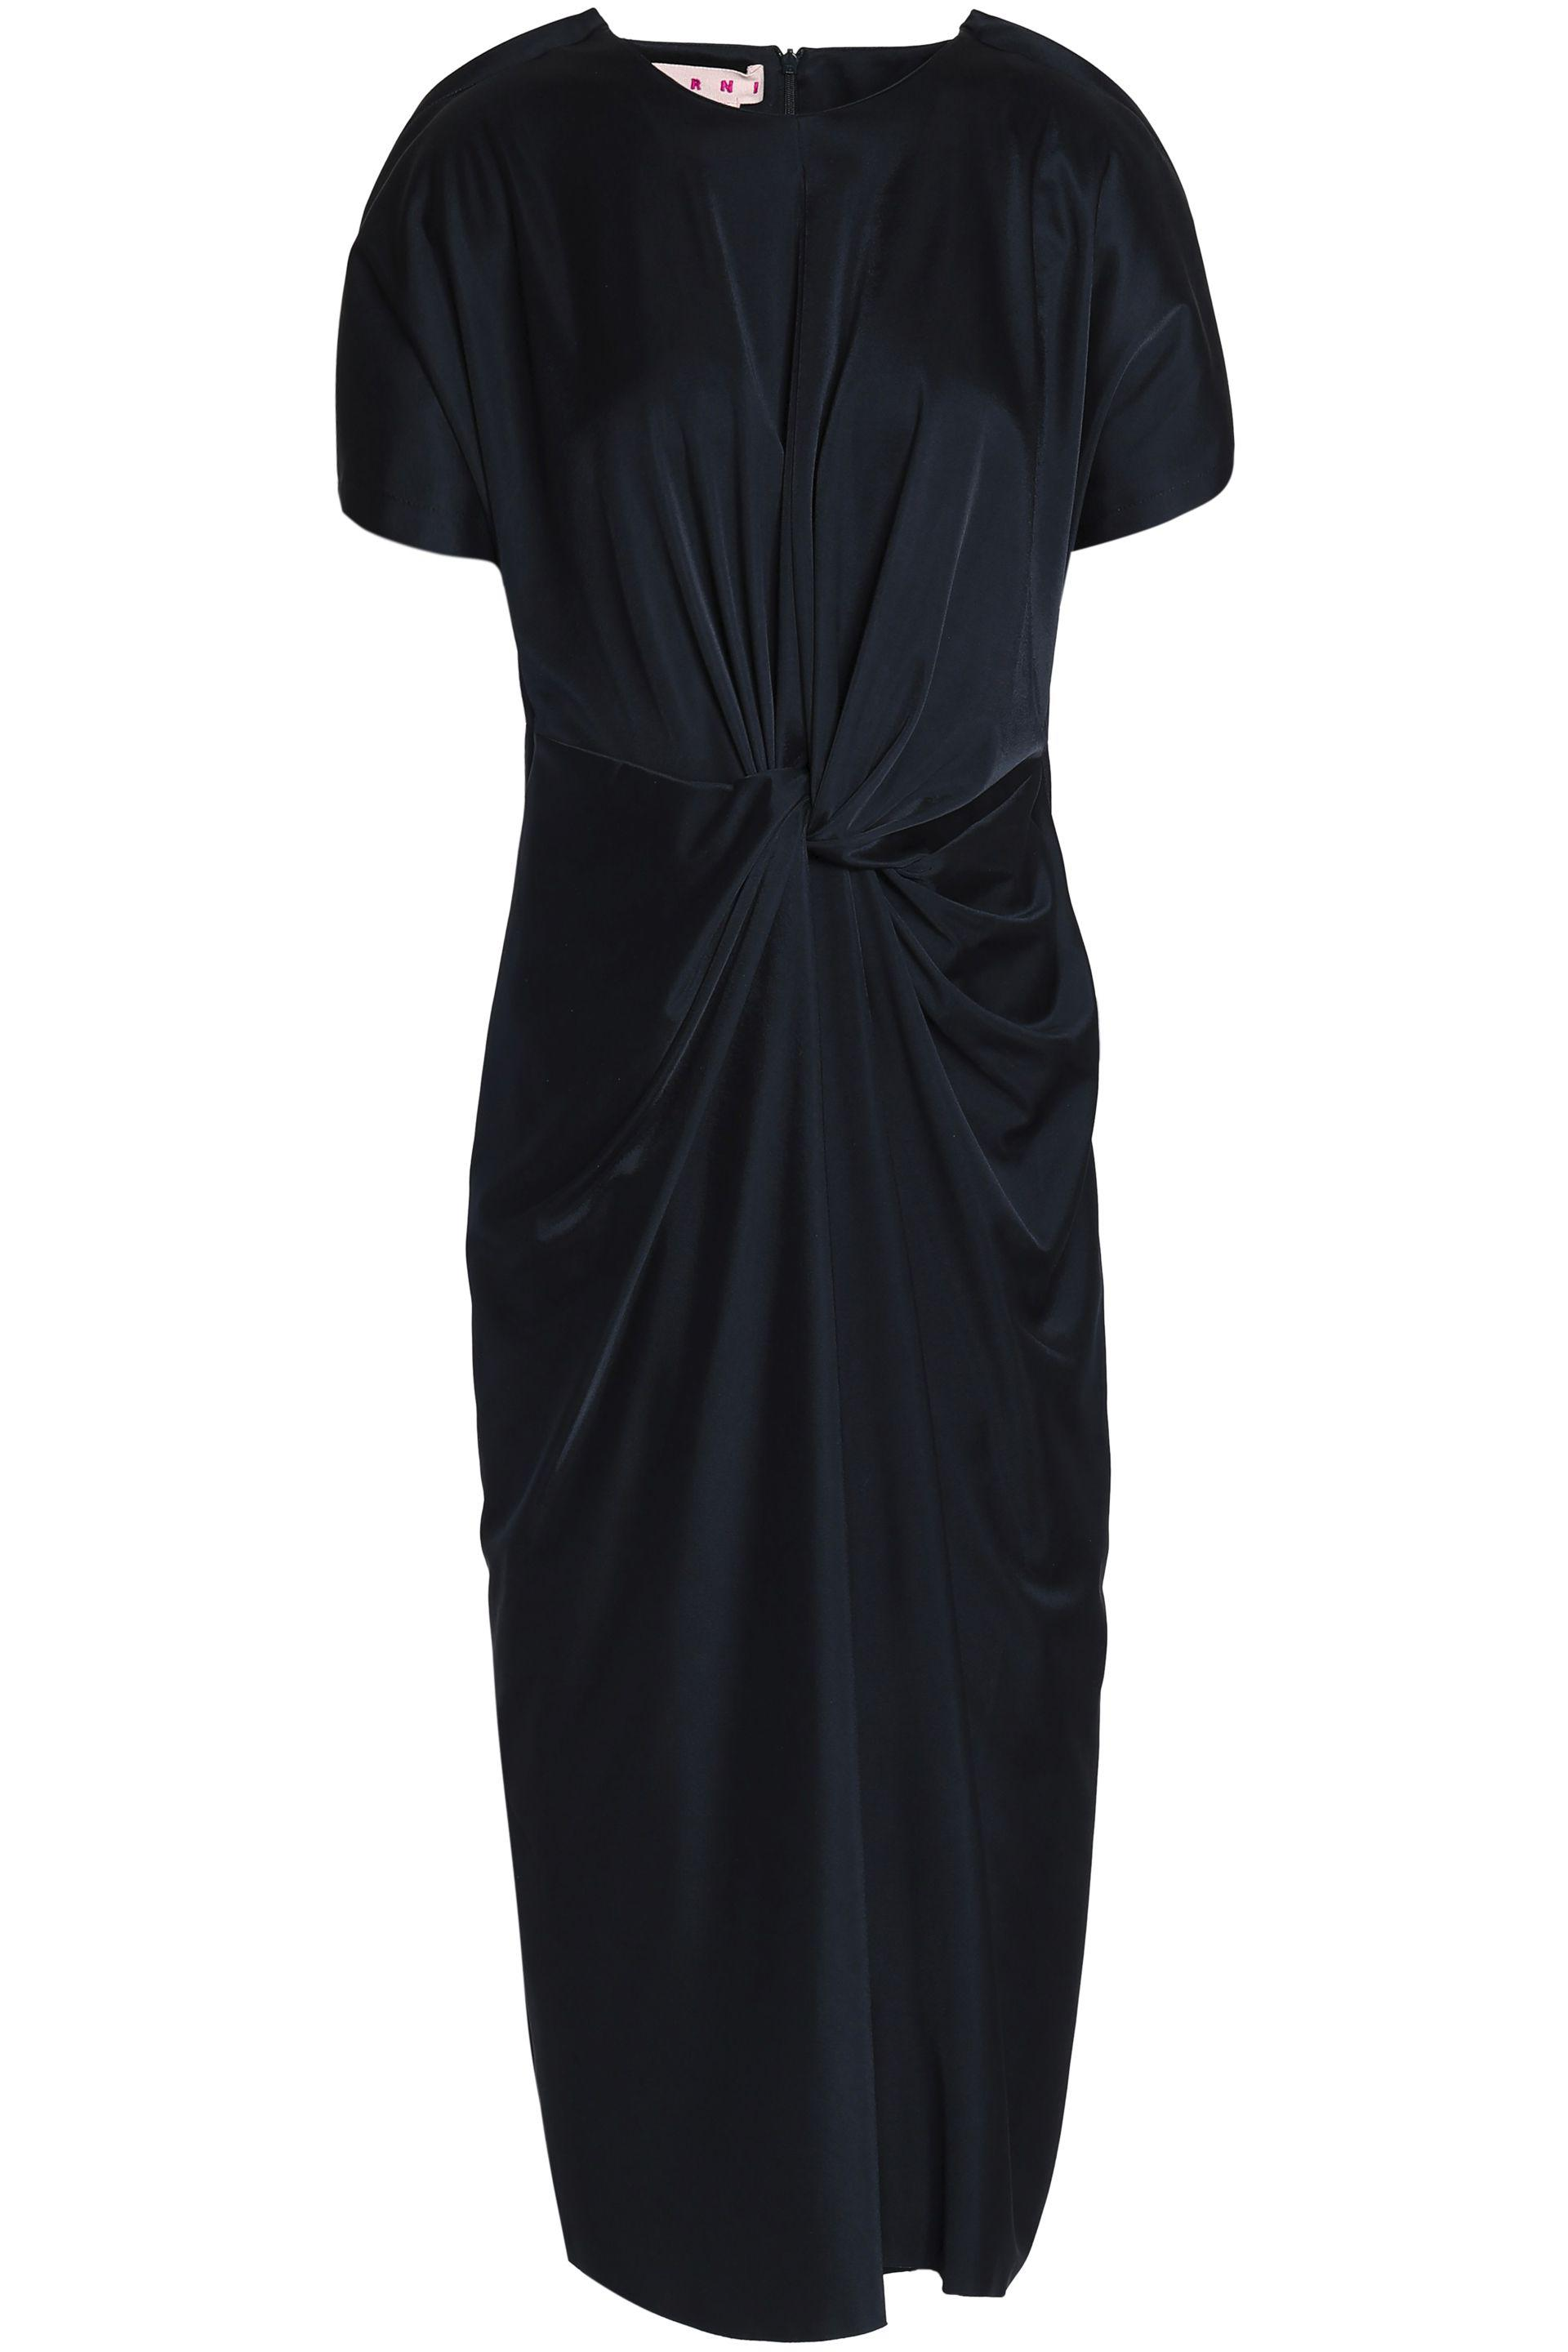 Marni Woman Wrap-effect Two-tone Cotton-blend Jersey Midi Dress Midnight Blue Size 40 Marni